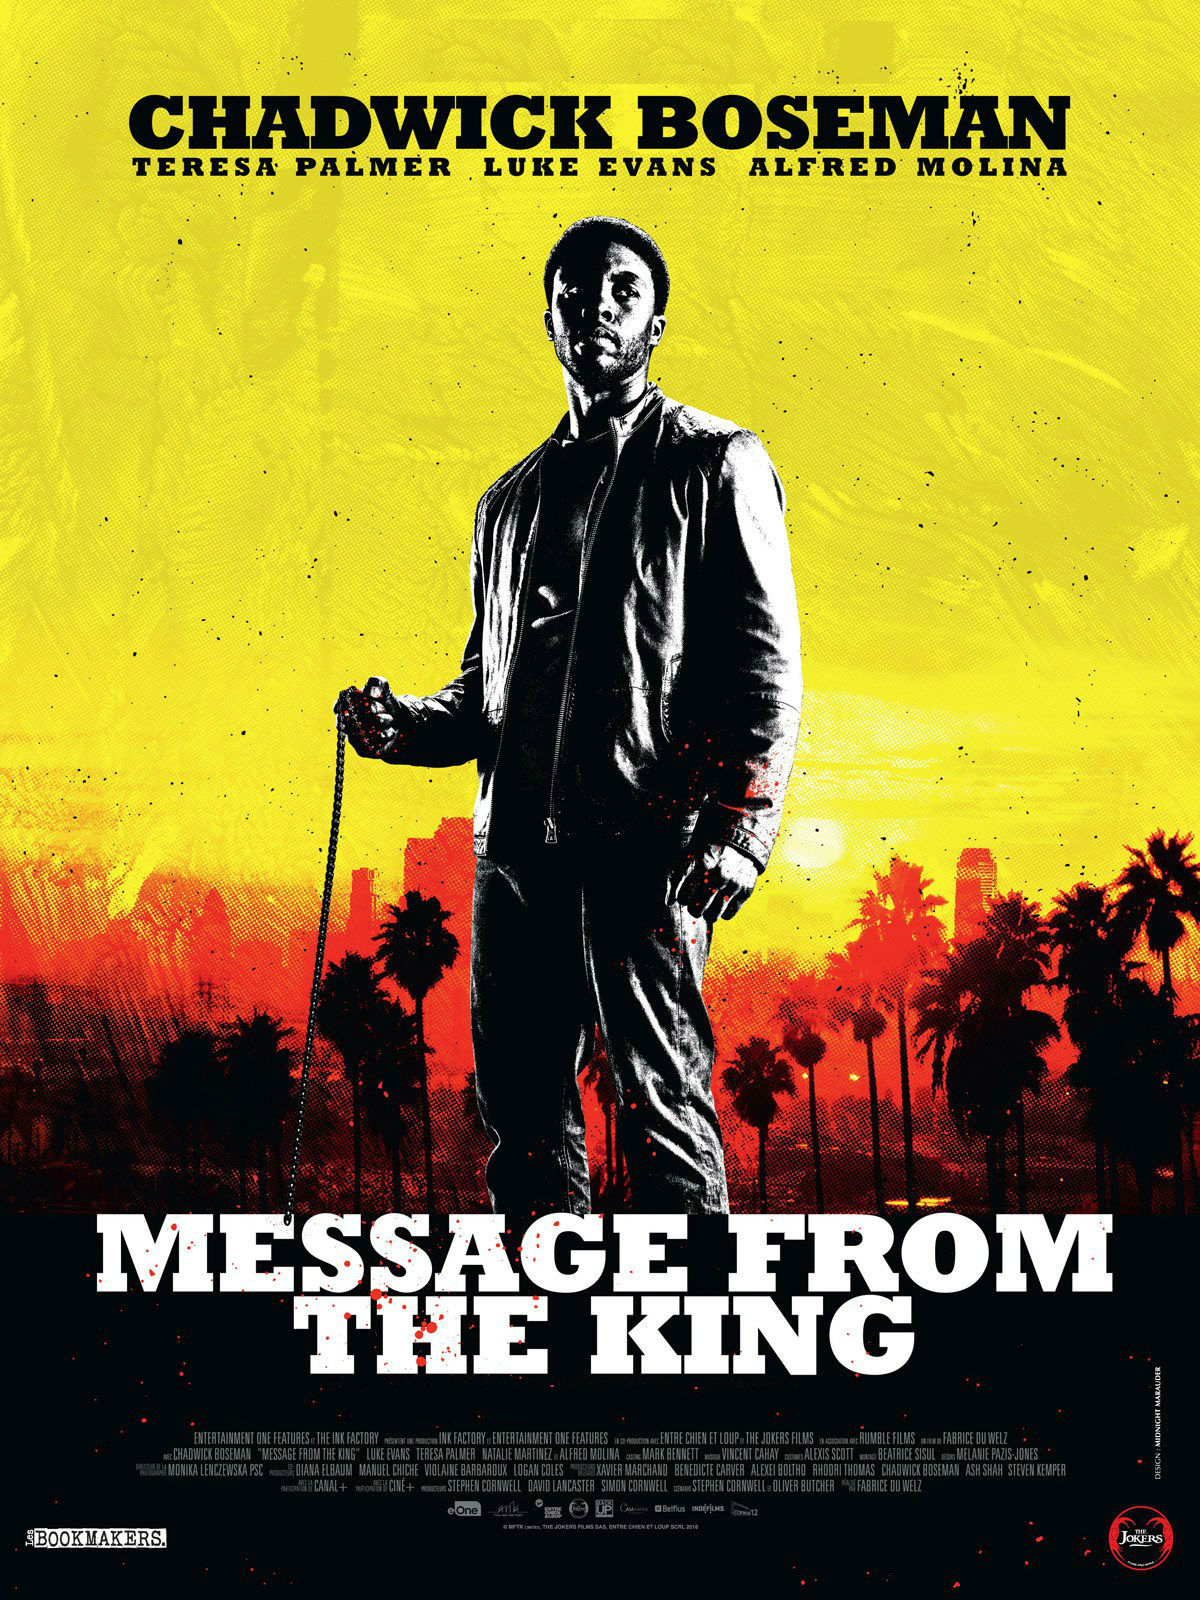 Message-From-The-King-International-Poster-2.jpg